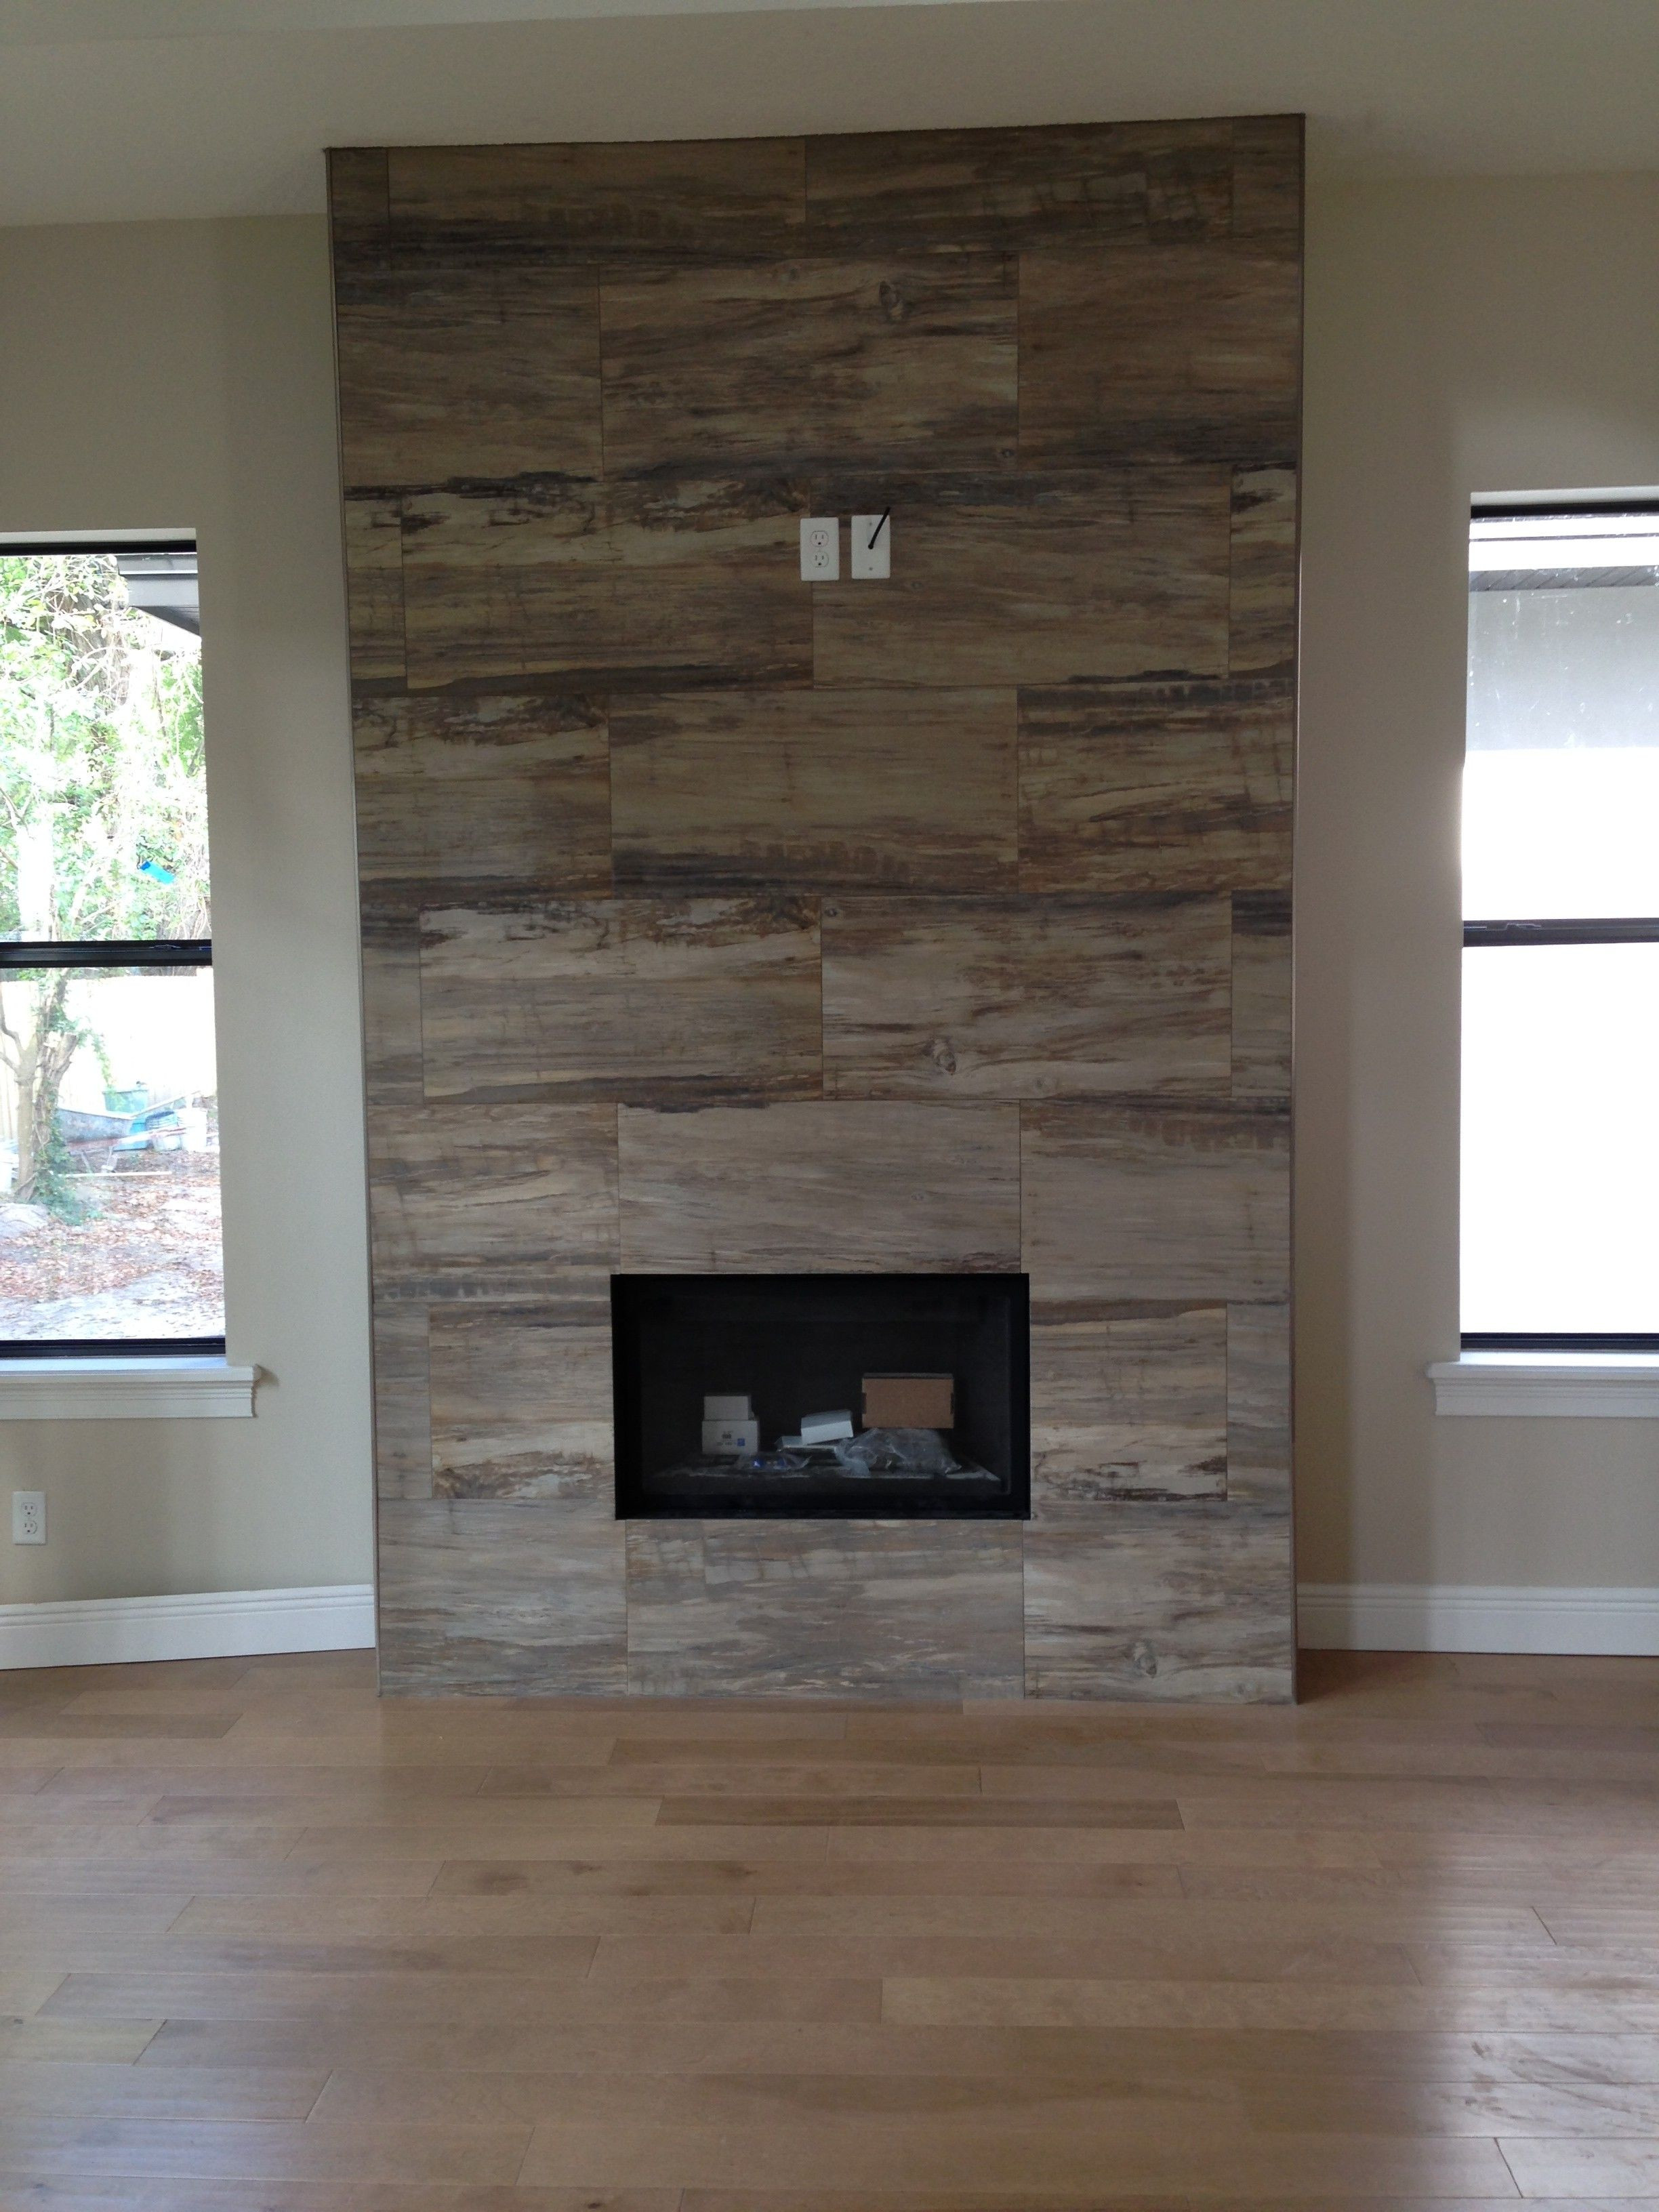 hardwood floors around brick fireplace hearths of j wood tile makes an absolutely stunning fireplace inspiration with j wood tile makes an absolutely stunning fireplace